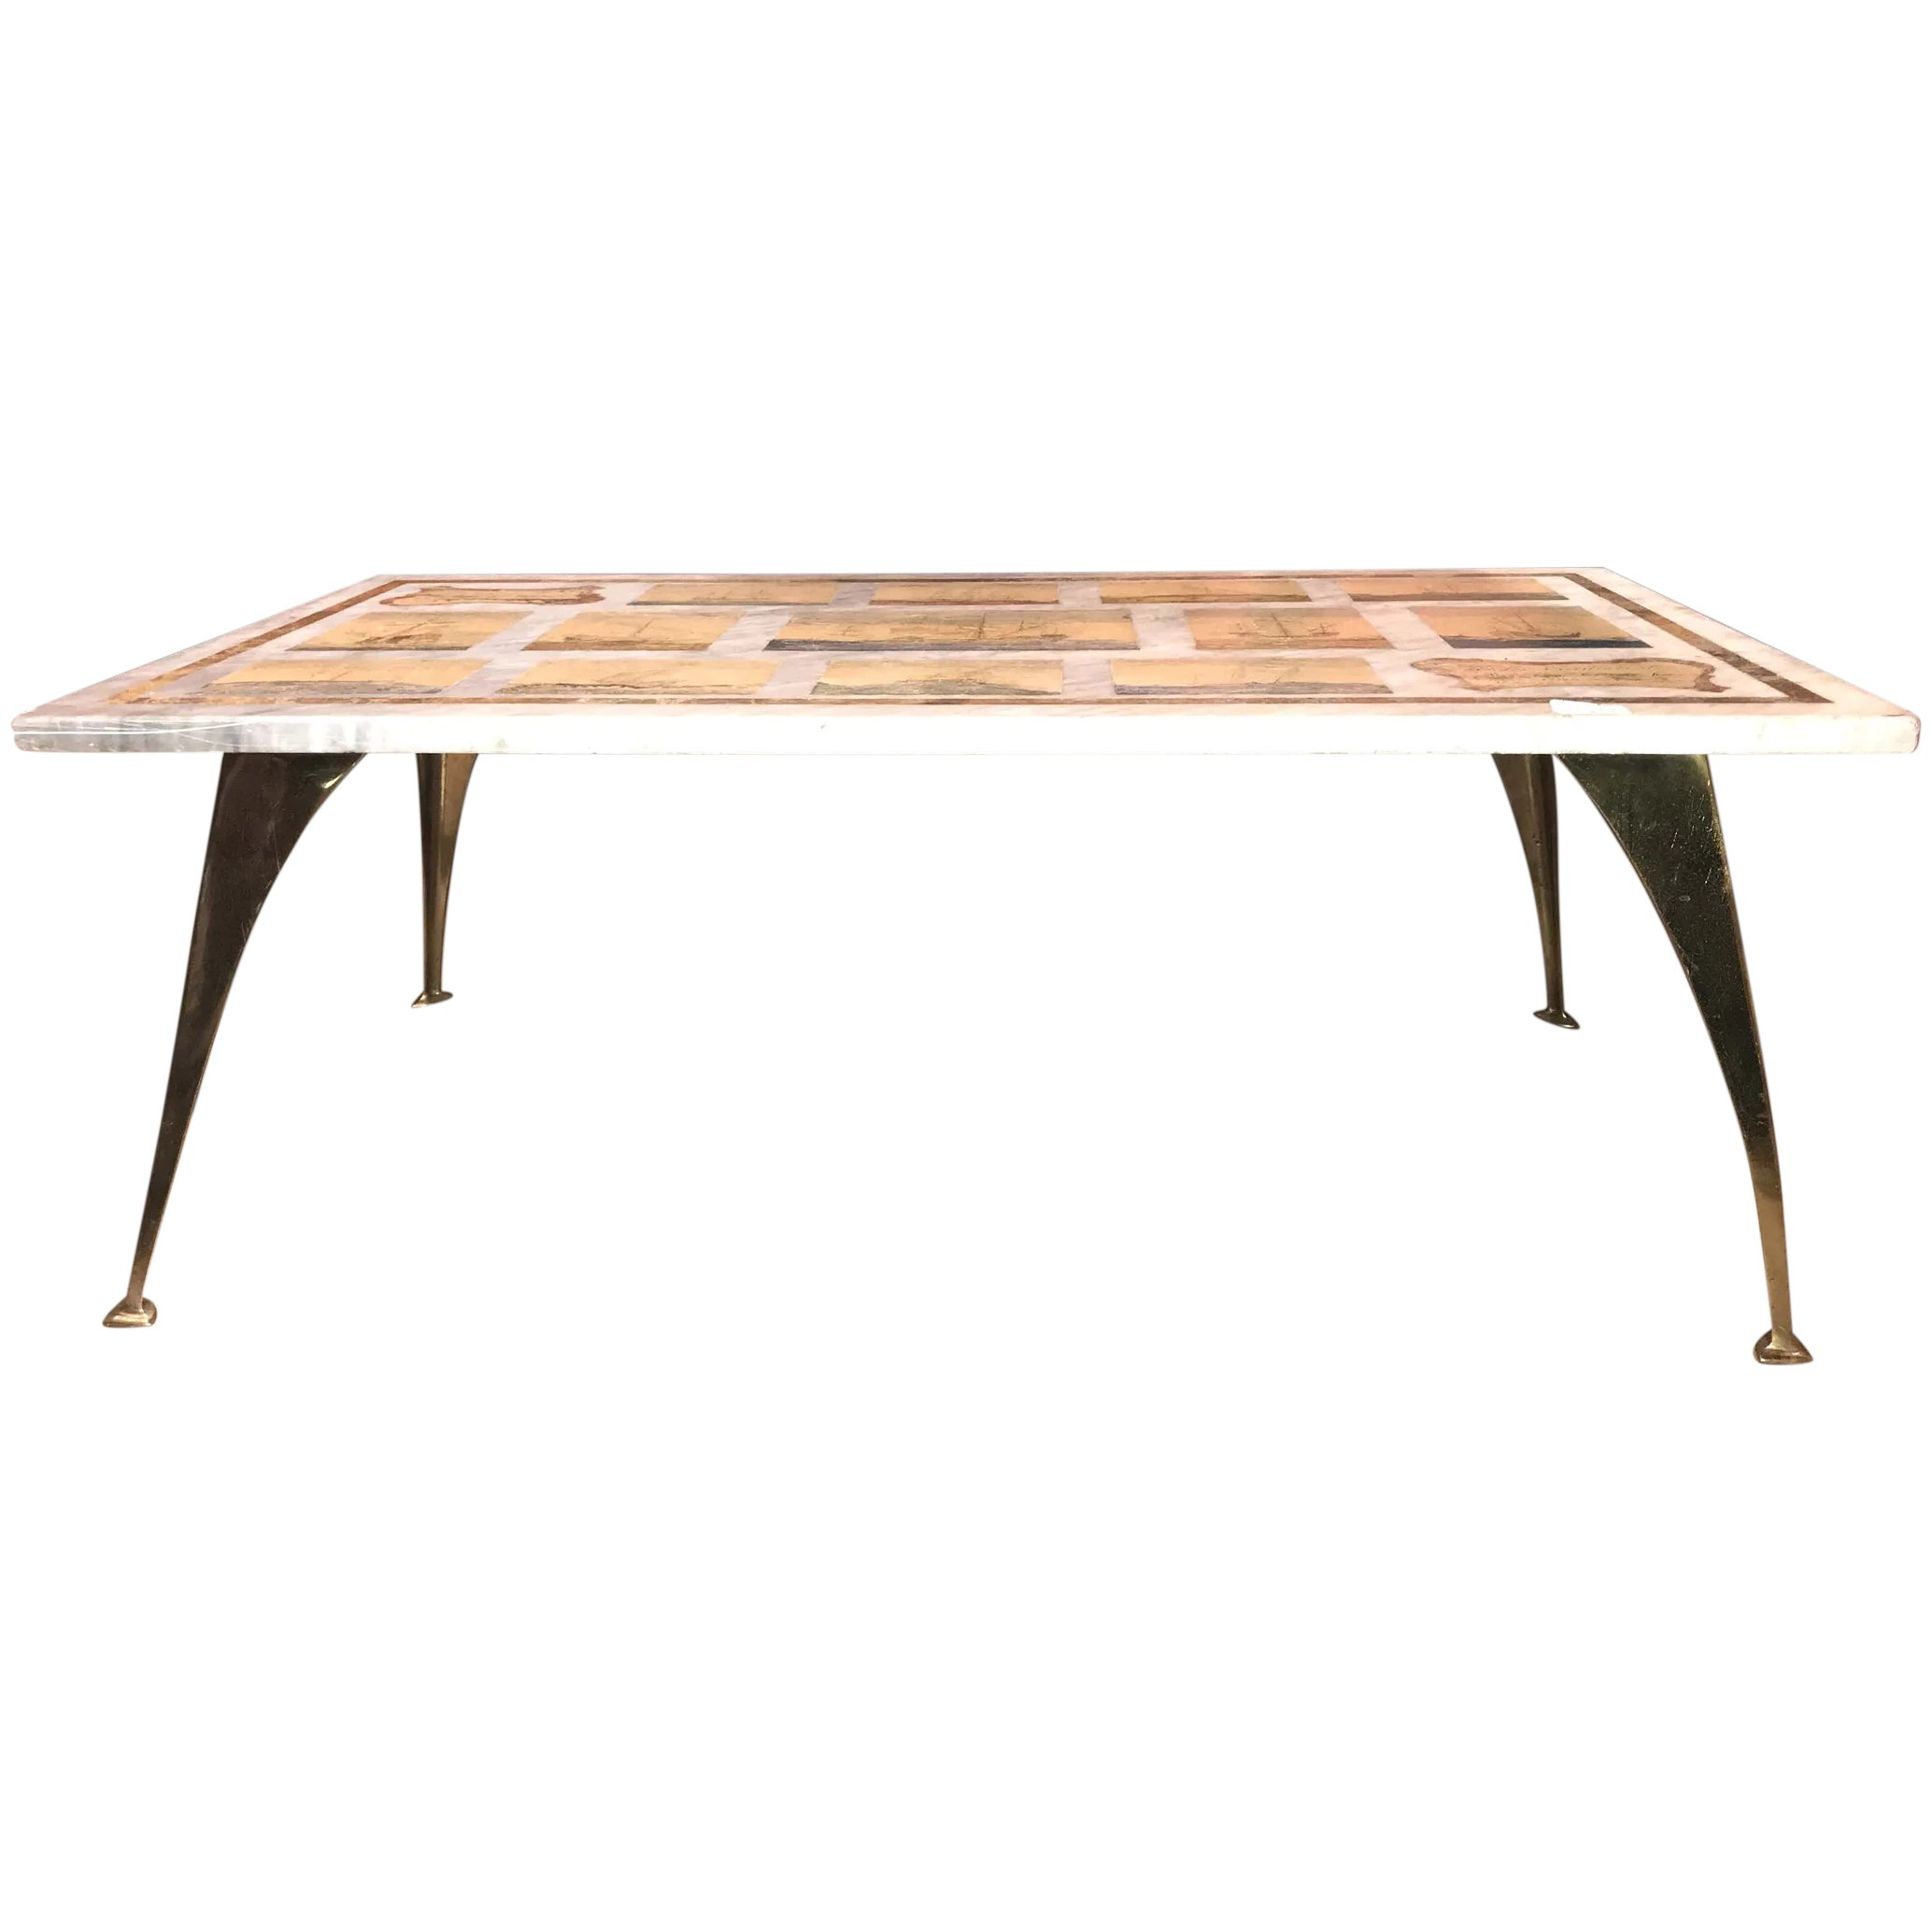 Della Valle Bros Italian Marble Top Mariner Coffee Table With Later New Hampshire Antique Co Op Ruby Lane